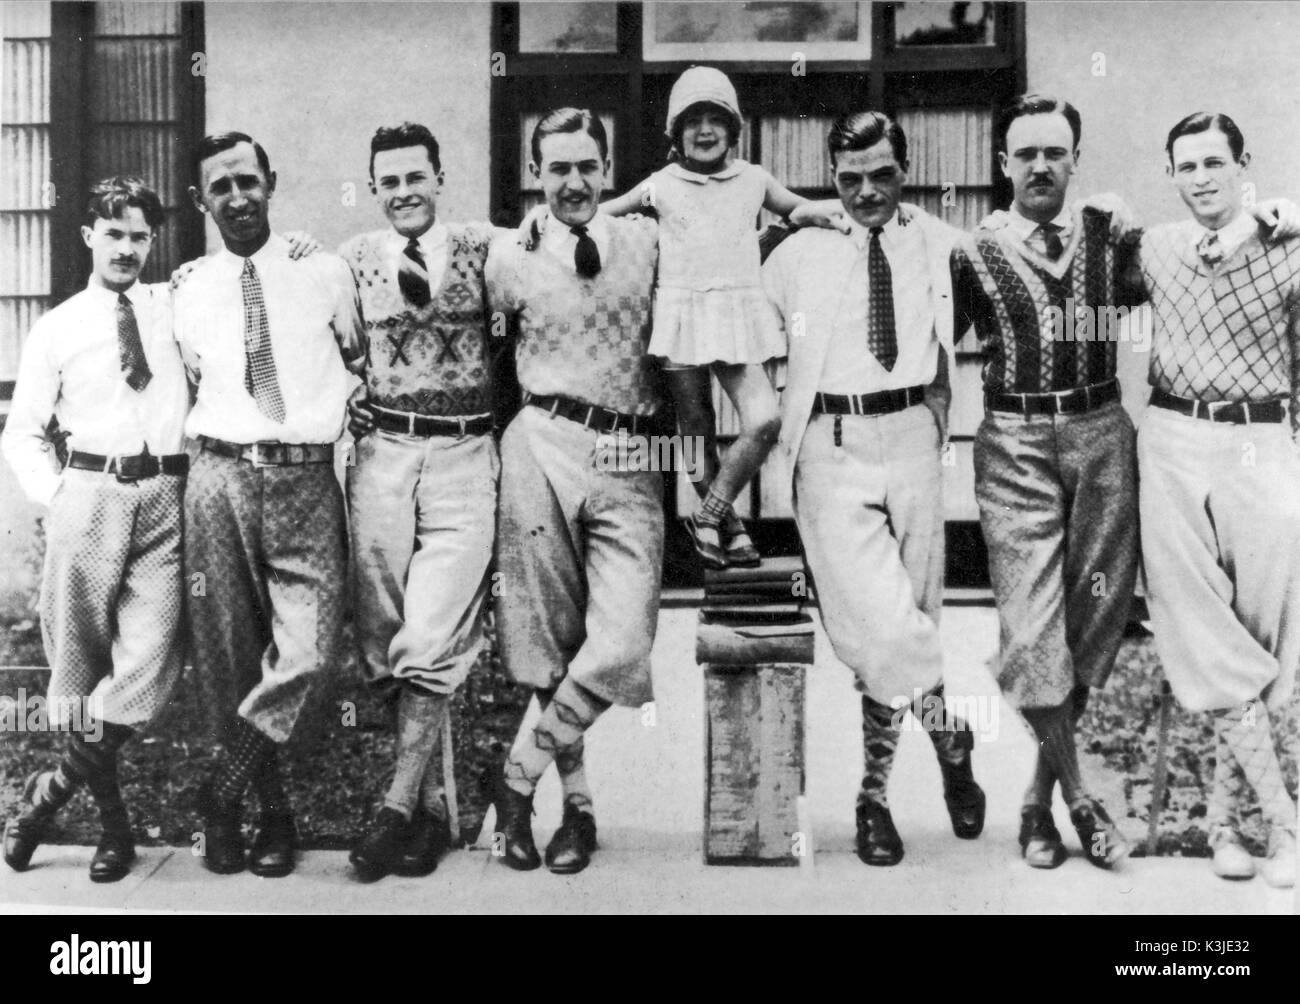 WALT DISNEY and his animators in either late 1926 or early 1927, when they were working on the Alice series of cartoons. HAM HAMILTON, ROY O. DISNEY, HUGH HARMAN, WALT DISNEY, MARGIE GAY who played Alice, RUDOLPH ISING, UB IWERKS, WALKER HARMAN WALT DISNEY and his animators in either late 1926 or early 1927, when they were working on the Alice series of cartoons. - Stock Image